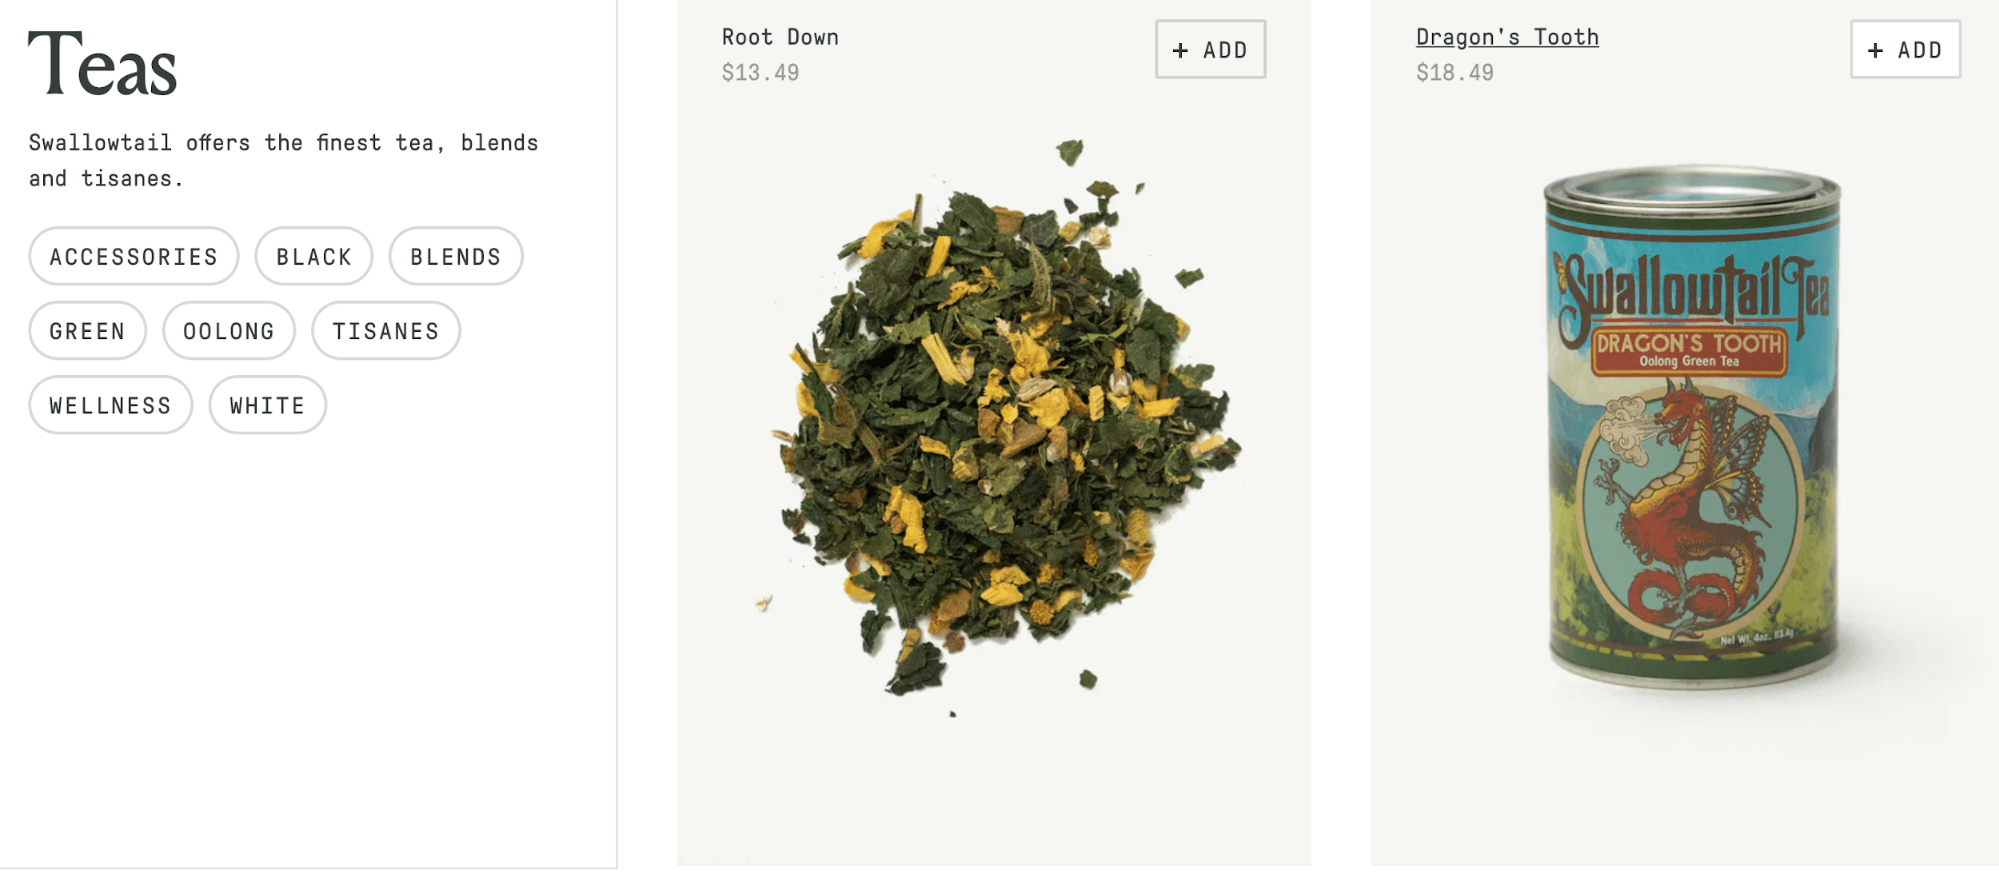 product images on ecommerce store